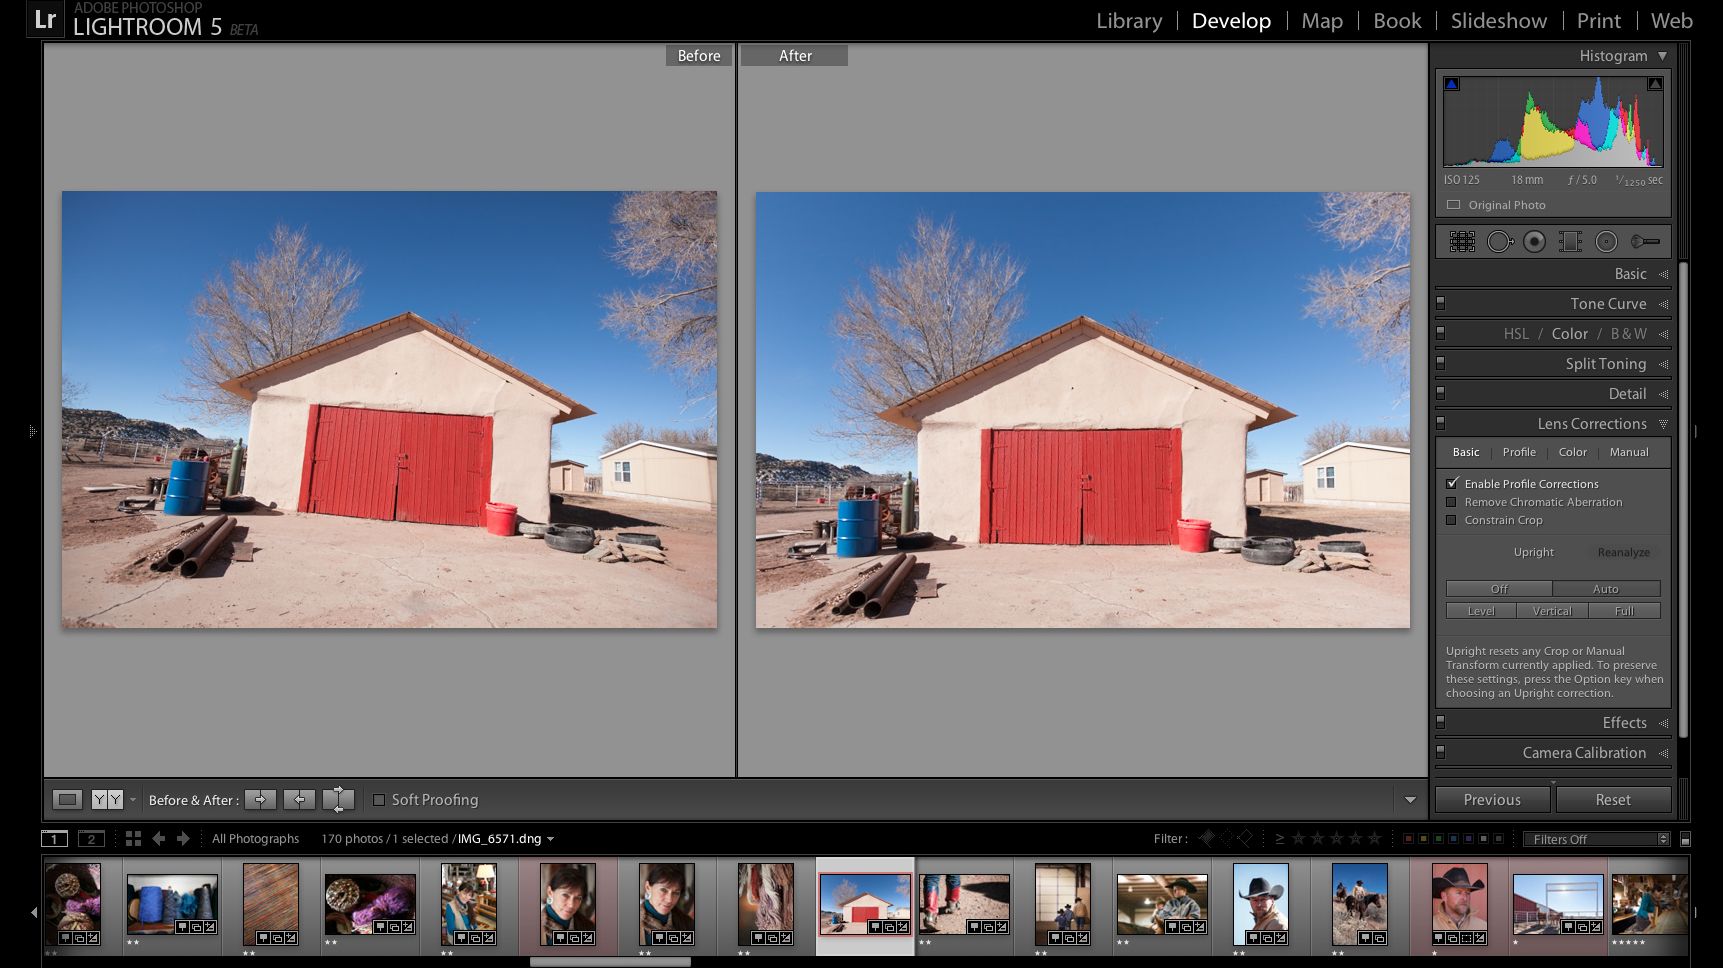 adobe announces lightroom 5 beta for free download techradar rh techradar com adobe lightroom 5 manual download adobe lightroom 5 guide